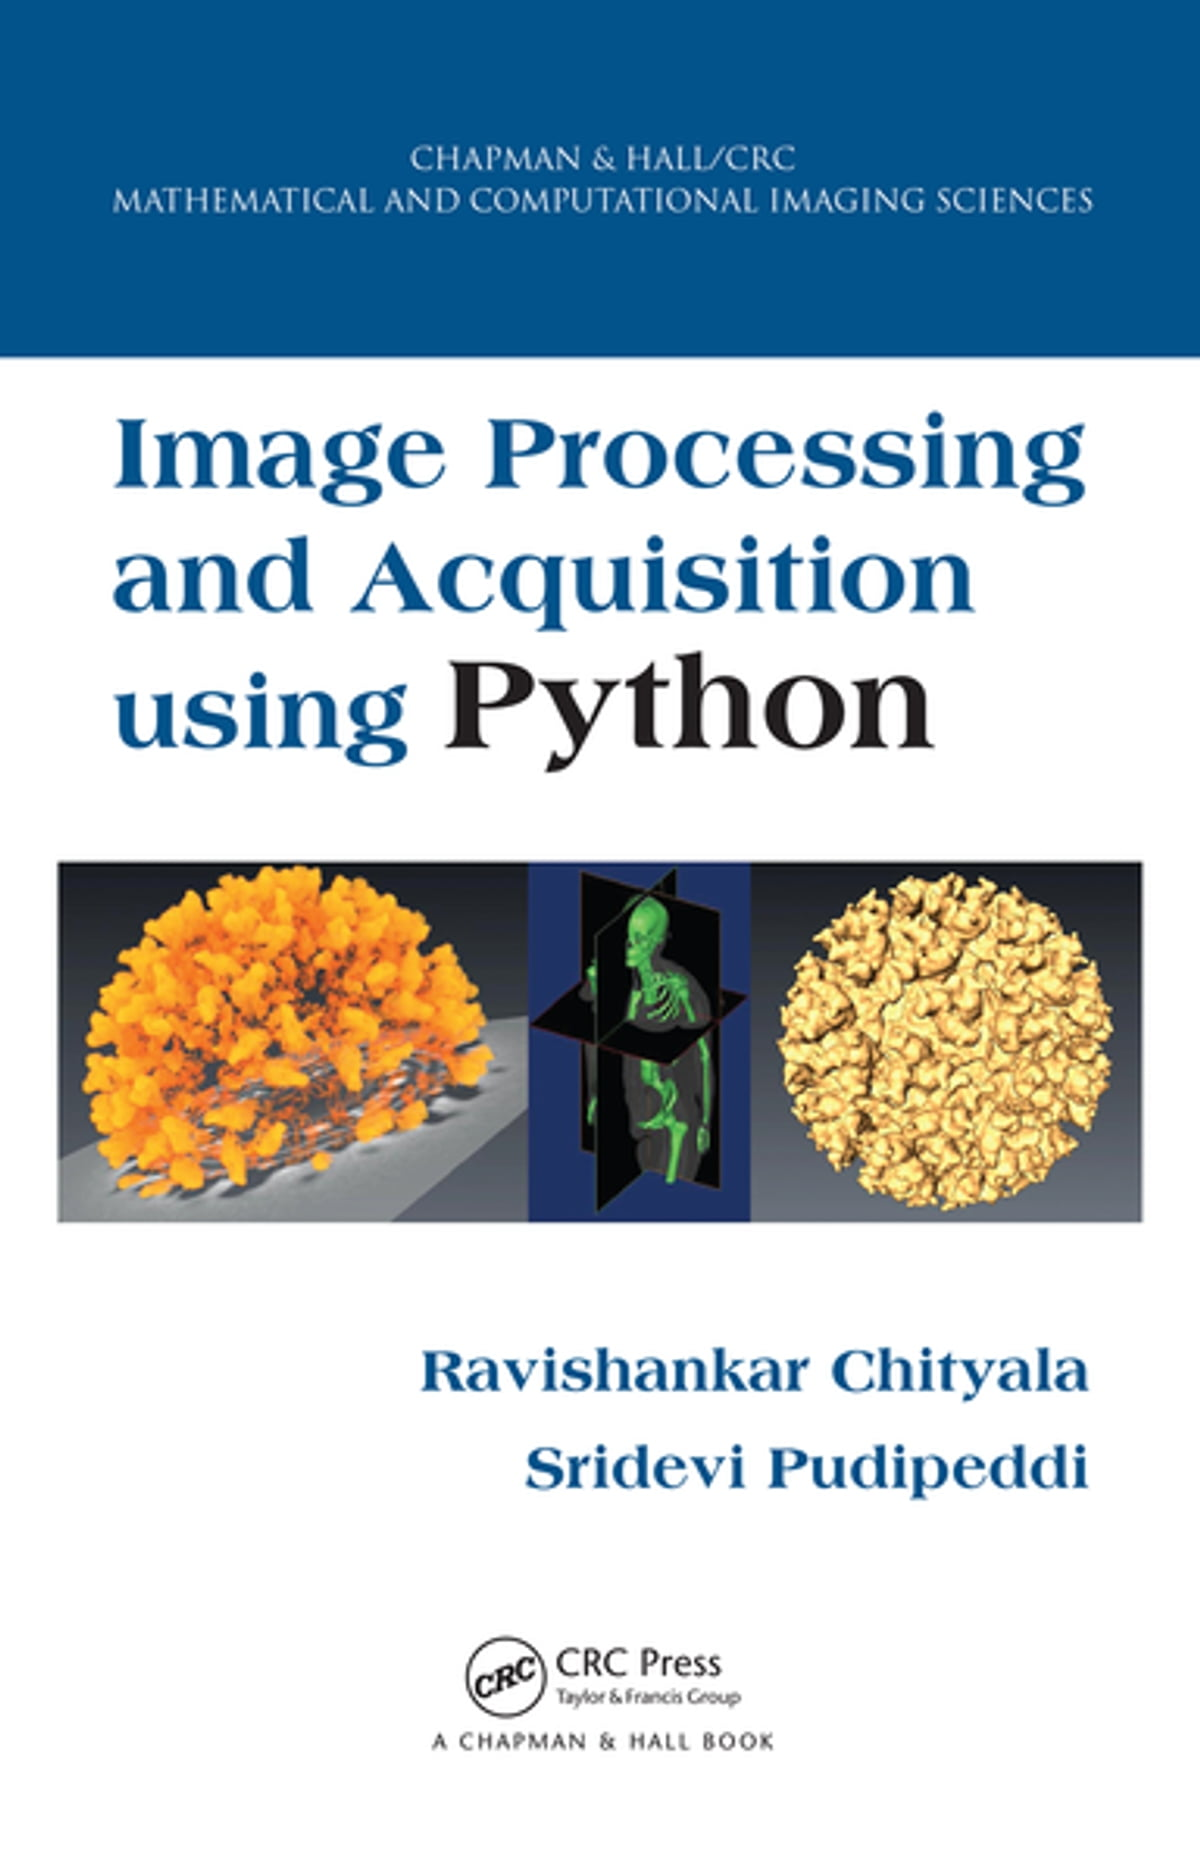 Image Processing and Acquisition using Python ebook by Ravishankar Chityala  - Rakuten Kobo